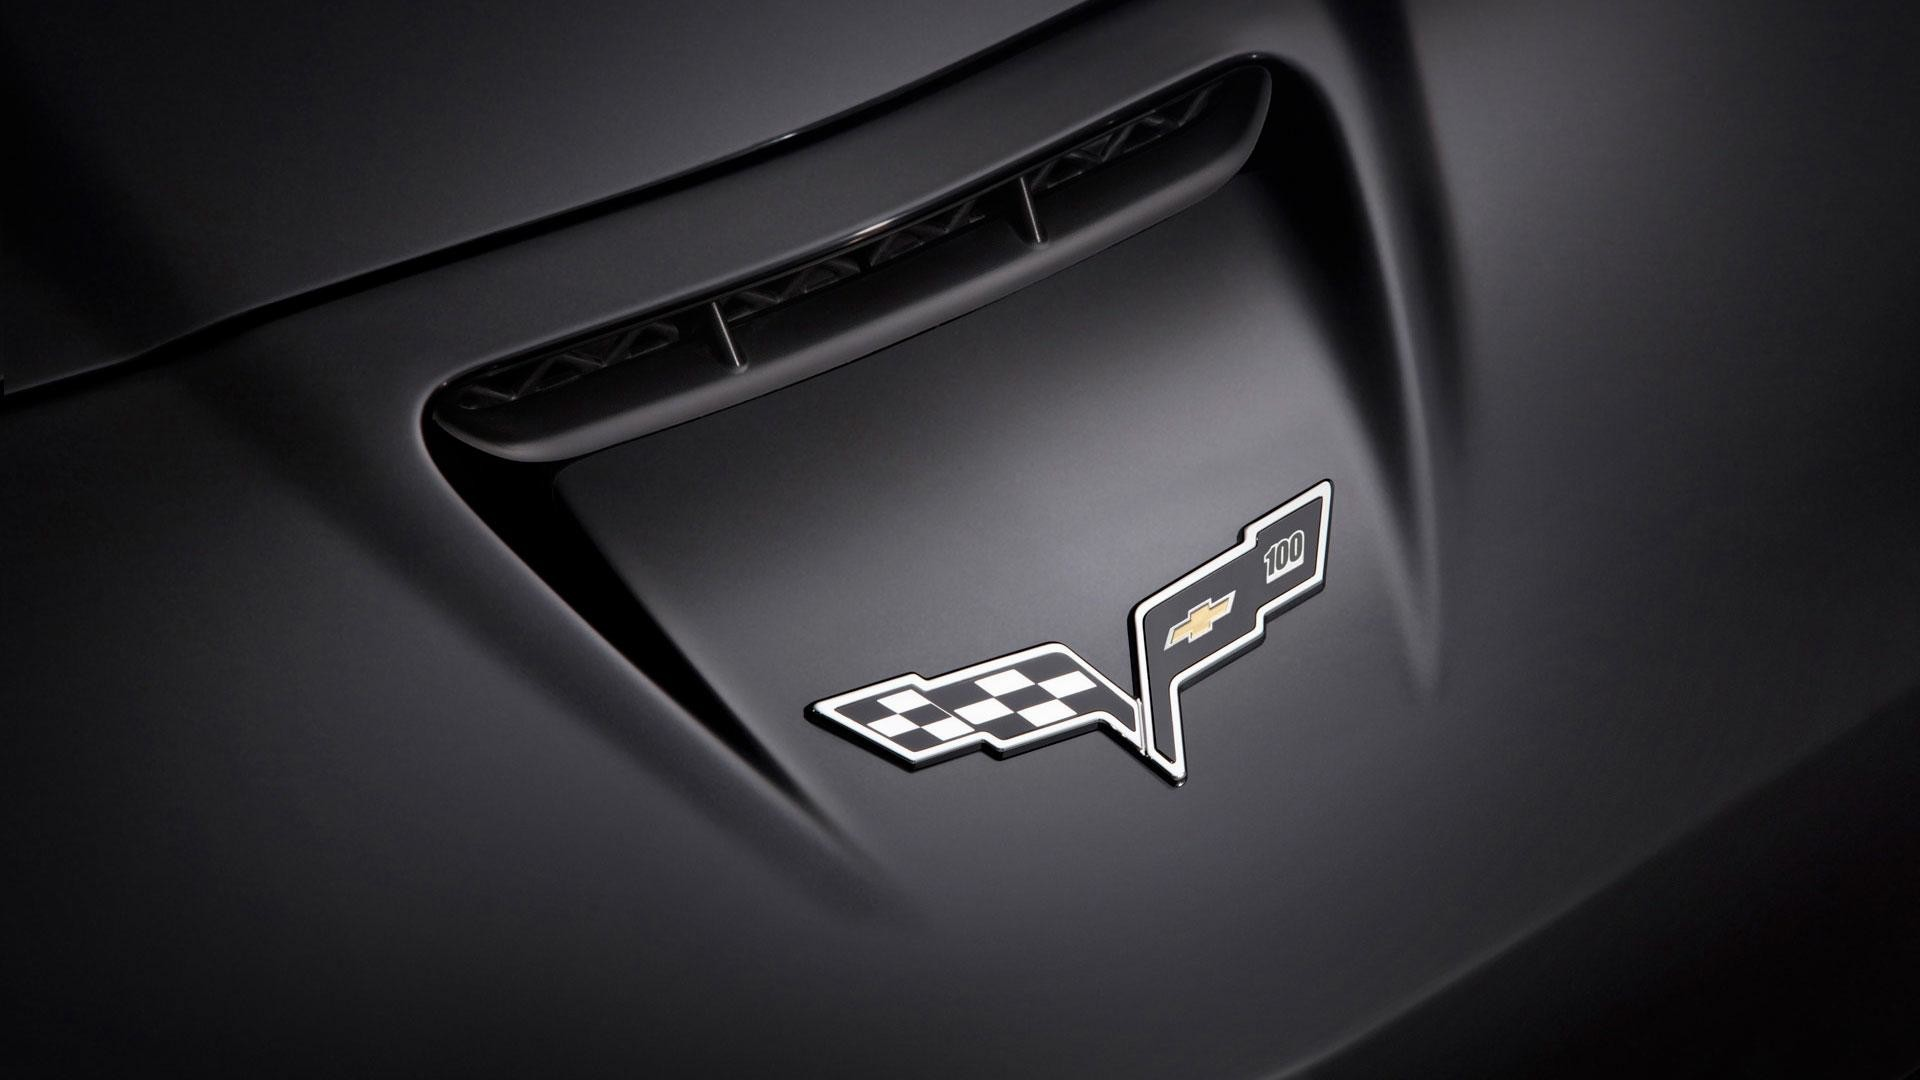 Chevy Logo Wallpaper Hd 60 Images